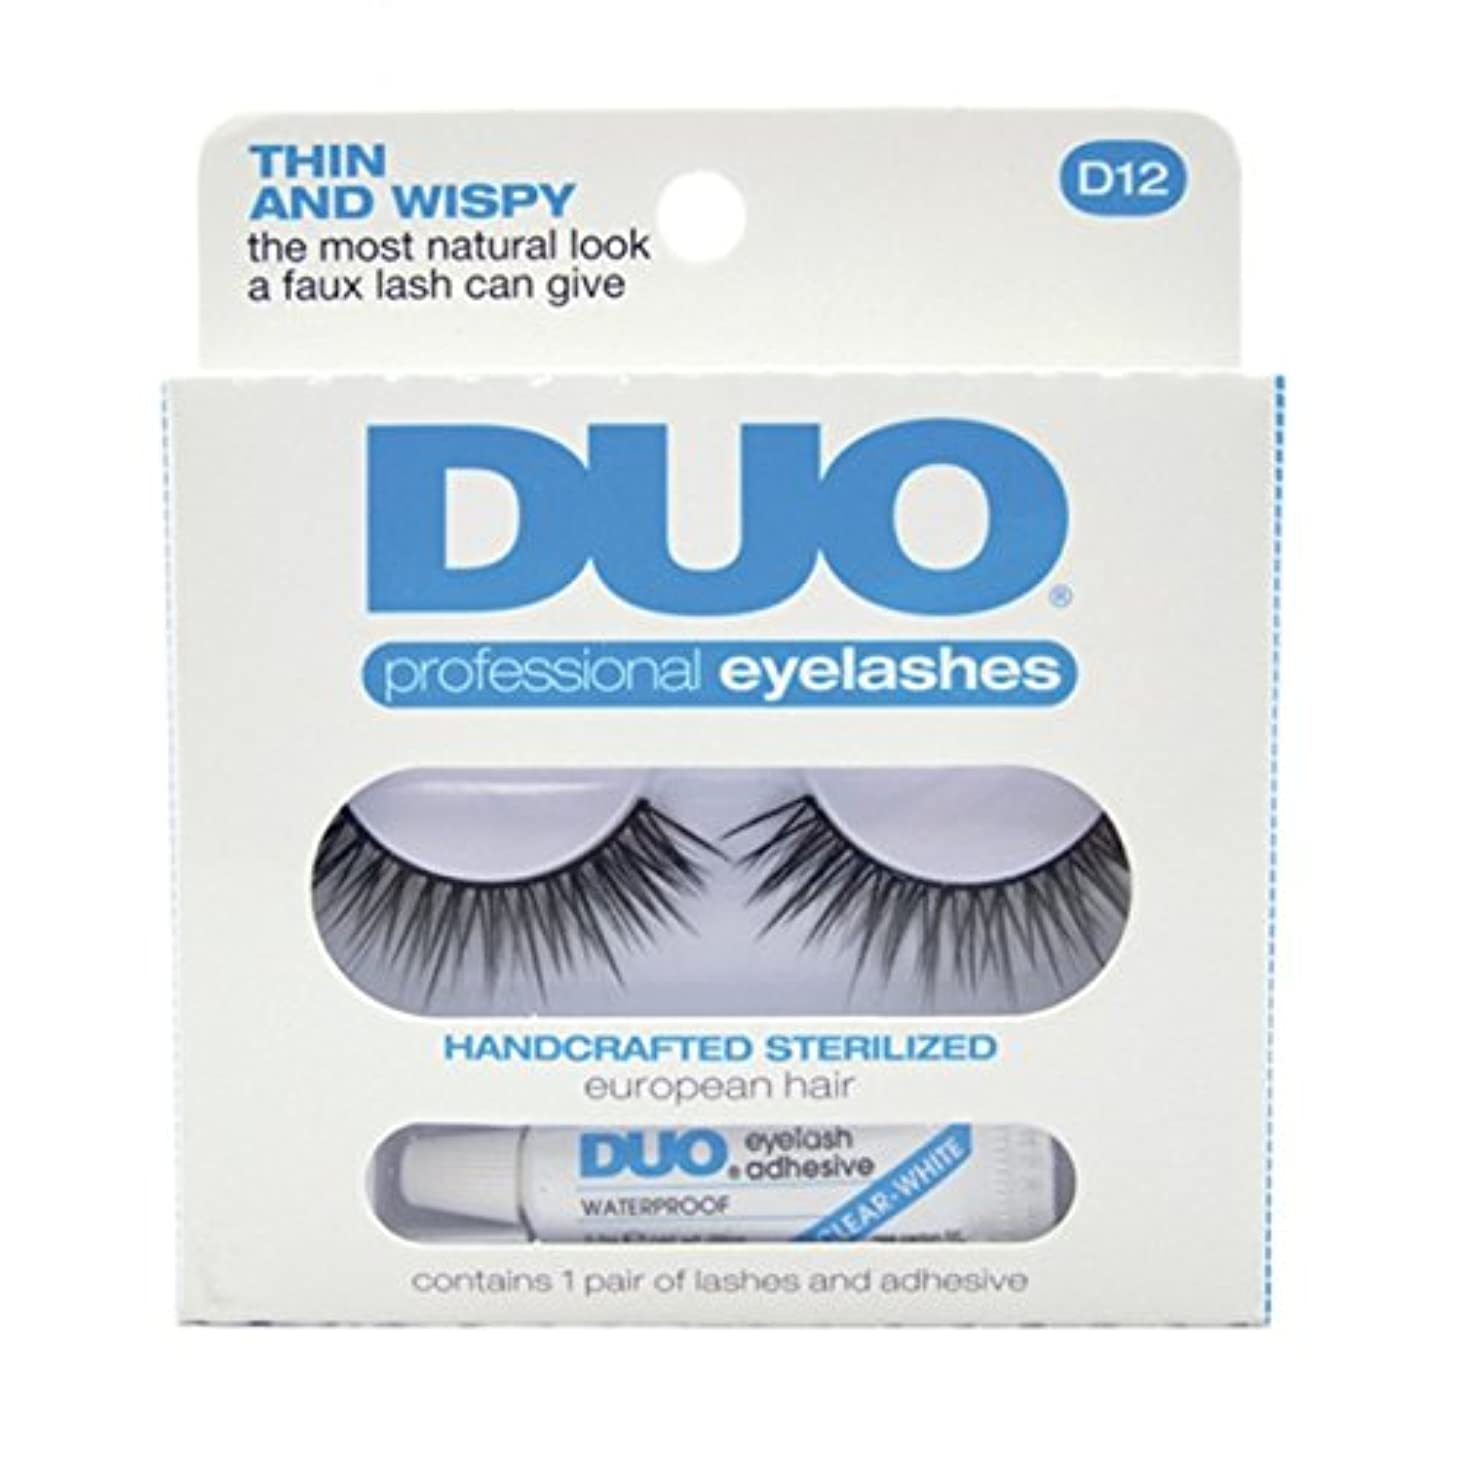 均等に雷雨再びDUO Eyelash Adhesive Think and Wispy D12 Eyelashes Thin and Wispy (並行輸入品)